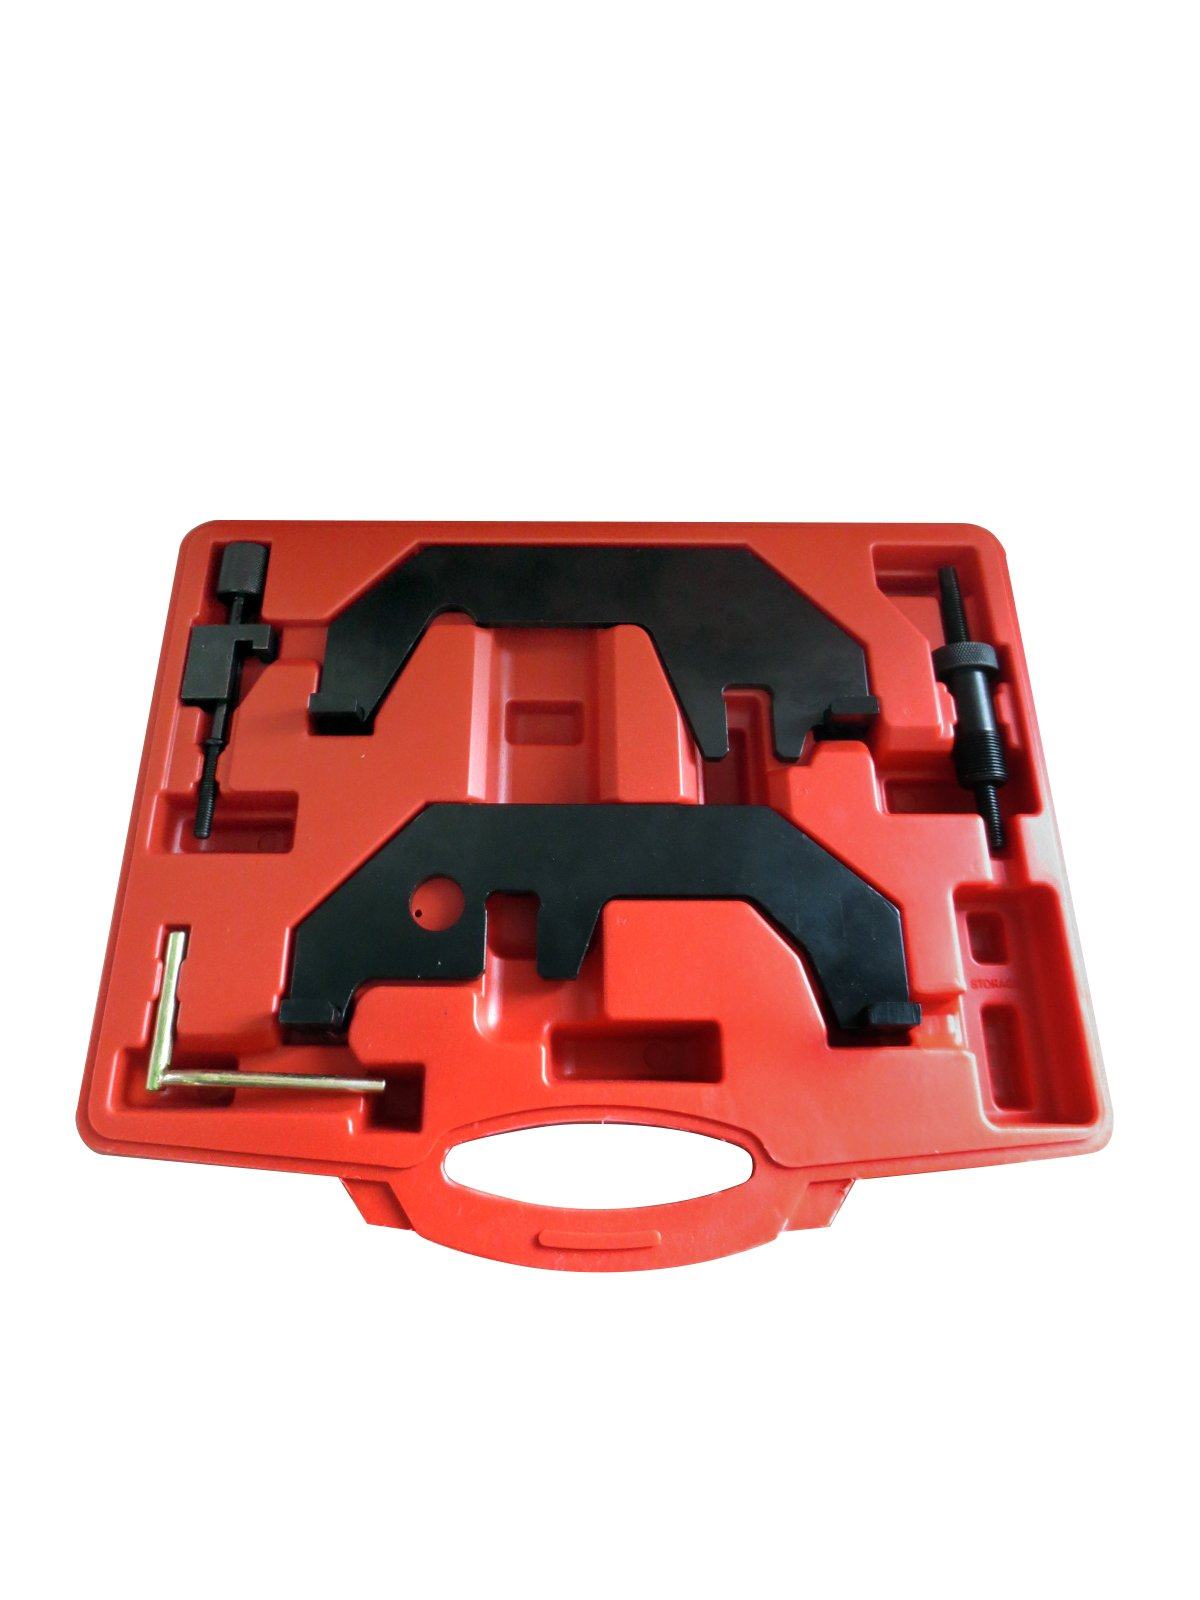 Generic BMW Engine Camshaft Alignment Locking Tool Kit N62 N73 N62tu Fly Wheel